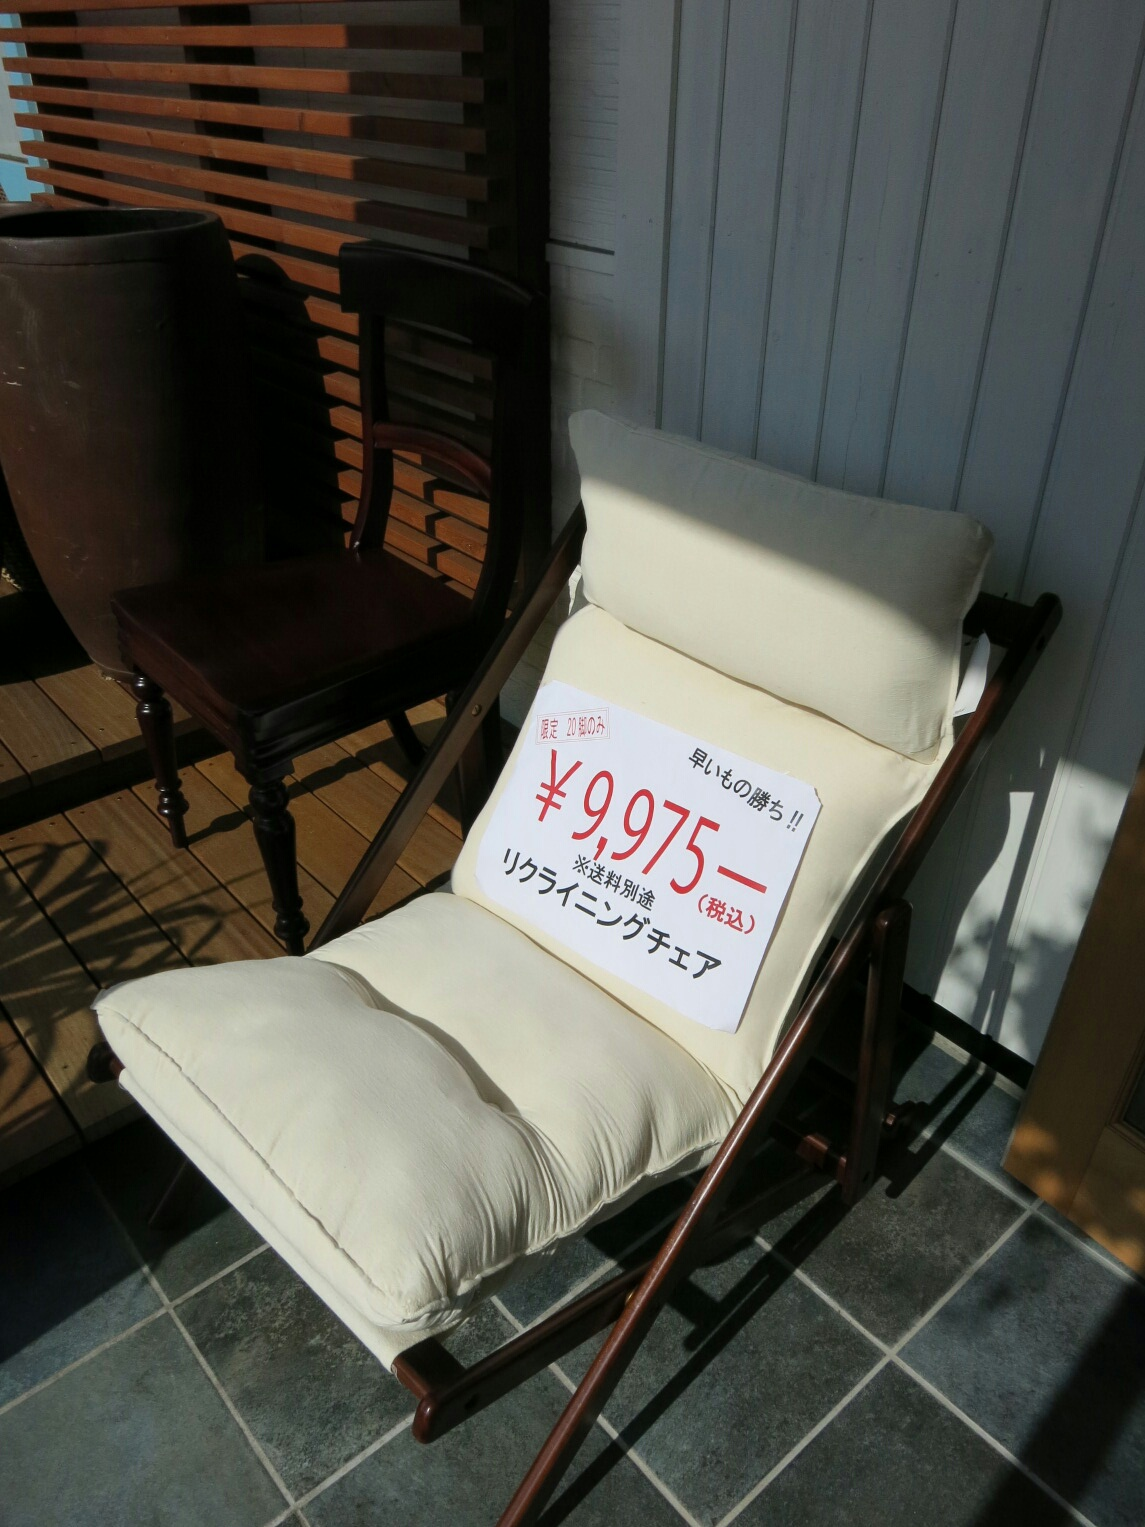 BELLEVUE(ベルビュー)  Fine Furniture ☆ New Open!_f0236260_15104182.jpg